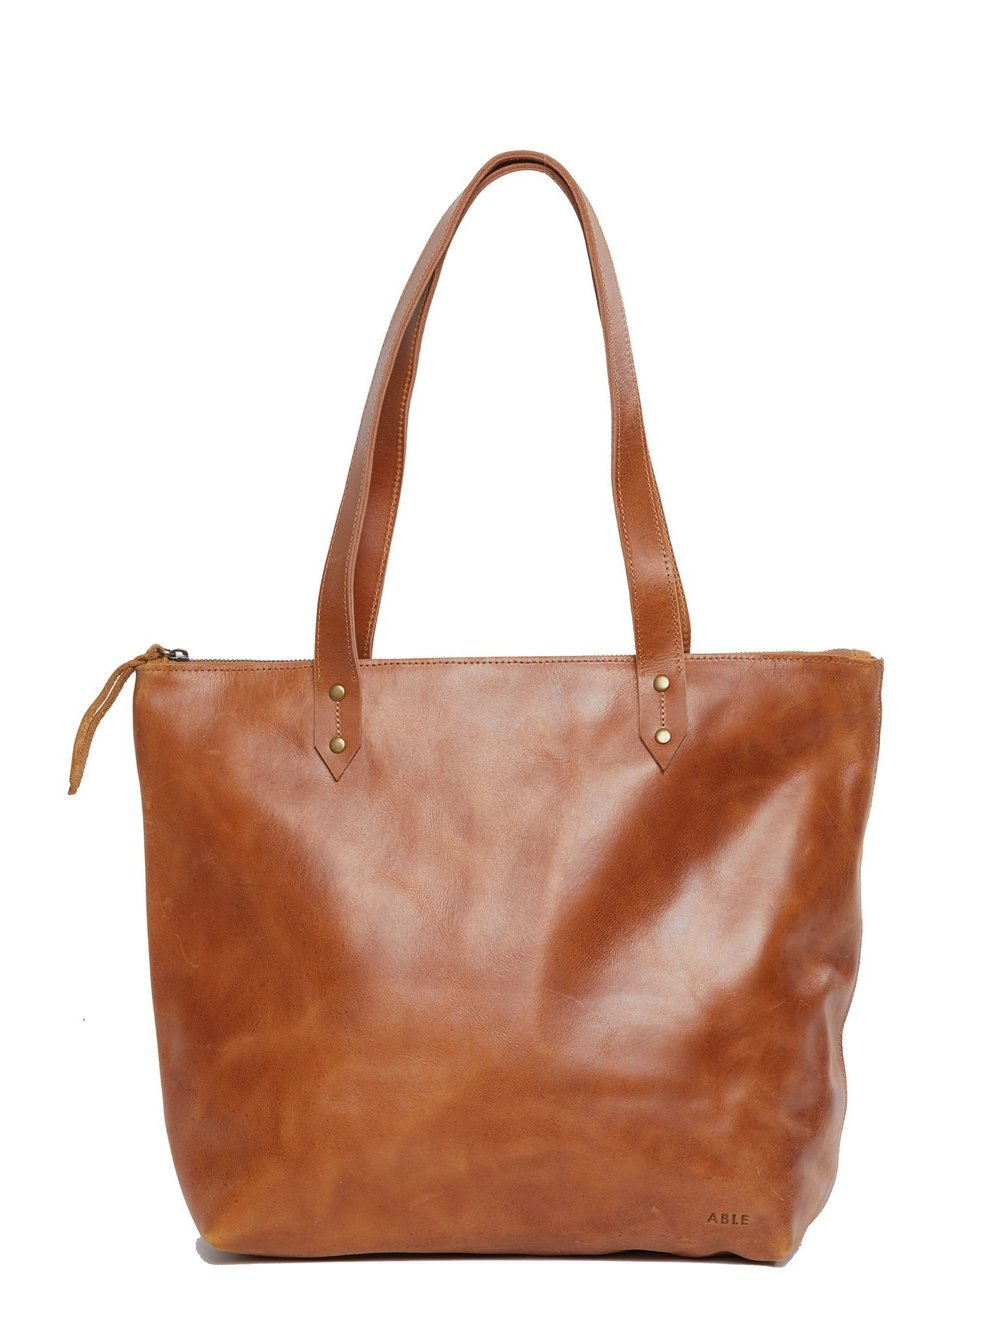 Ethically Made Leather Bags for the Fashionable Woman